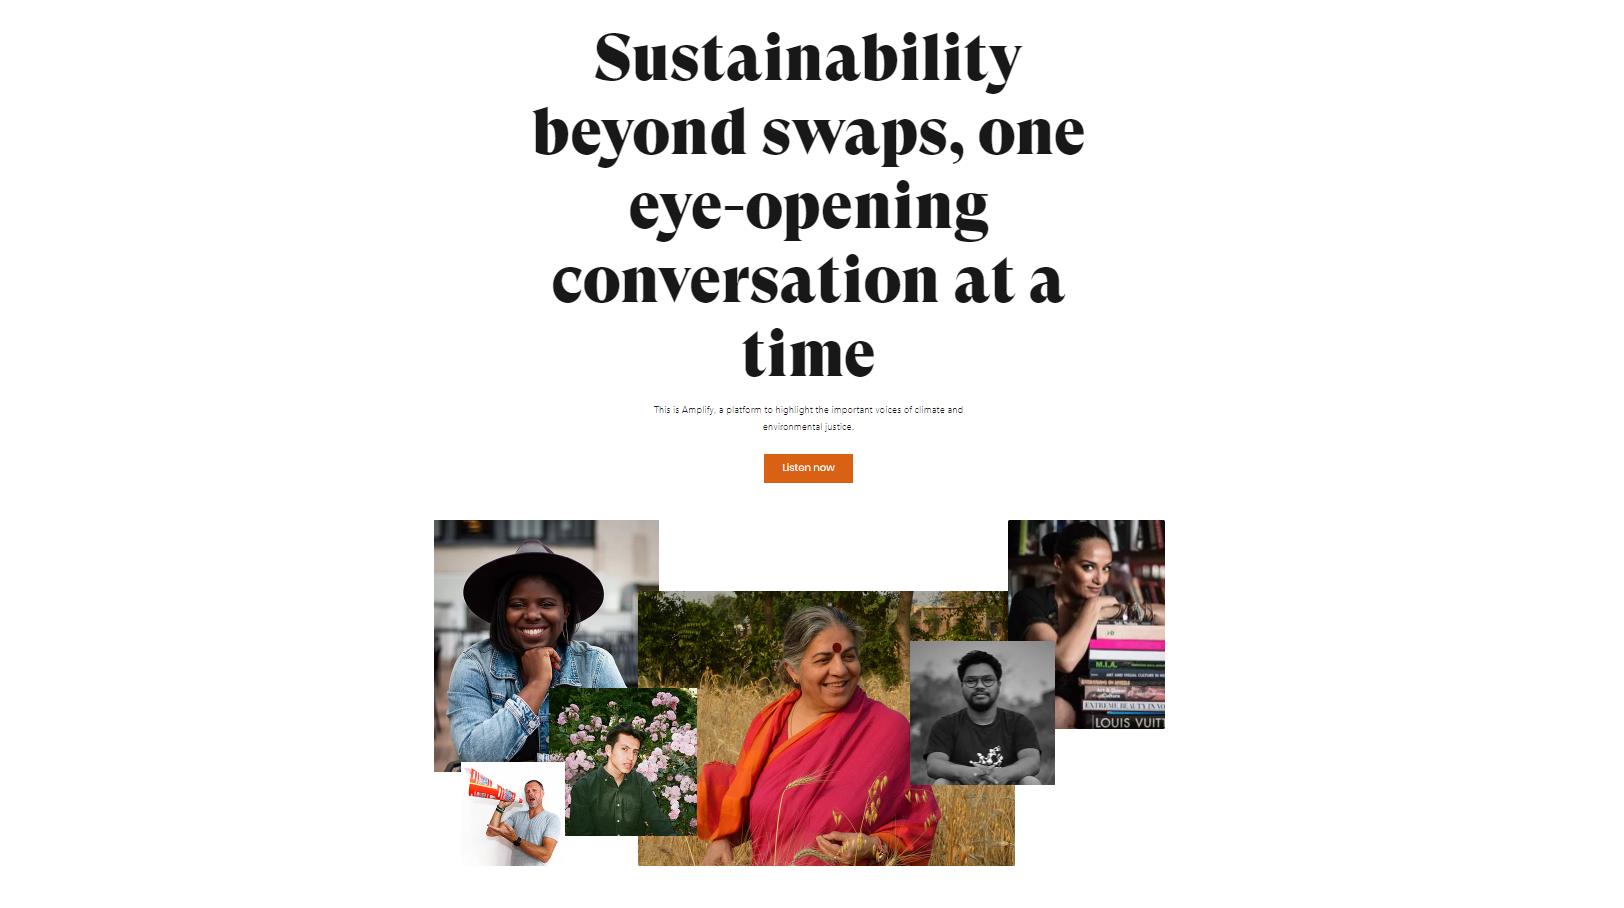 The image is from the Amplify website and says: Sustainability beyond swaps, one eye-opening conversation at a time